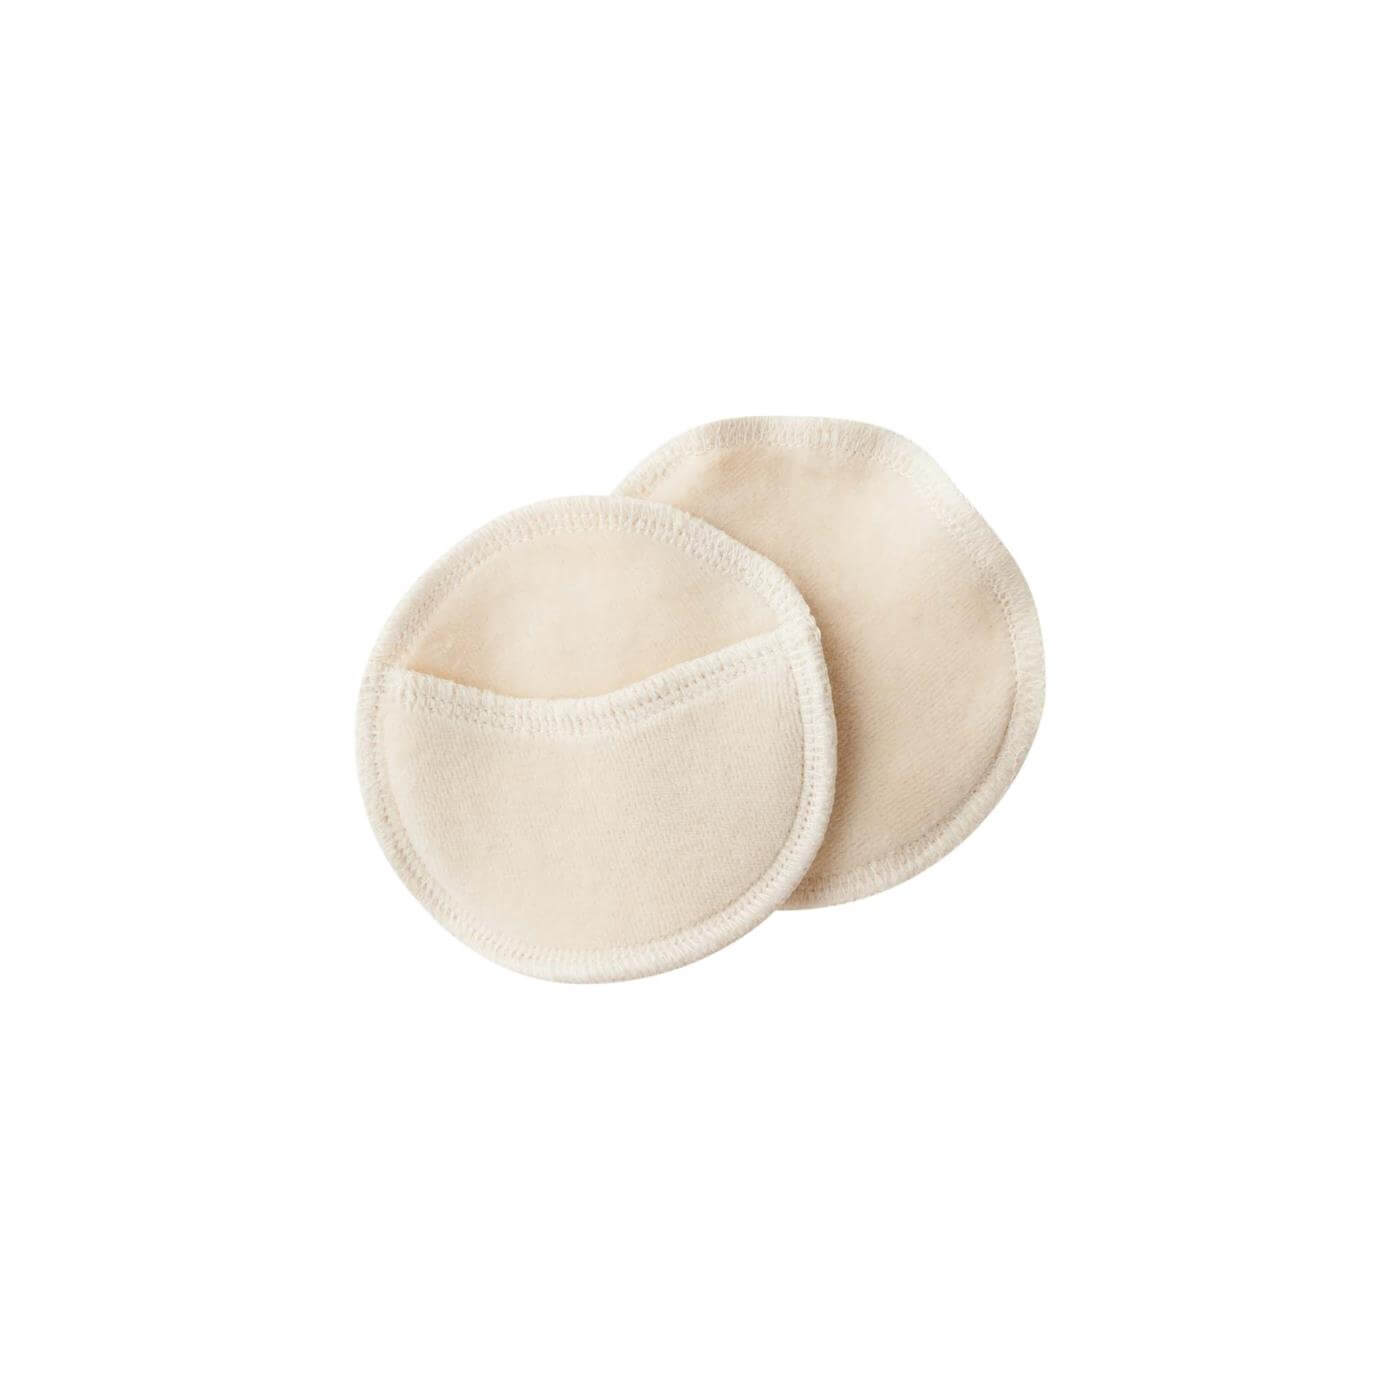 Make-up removal pads, set of 7